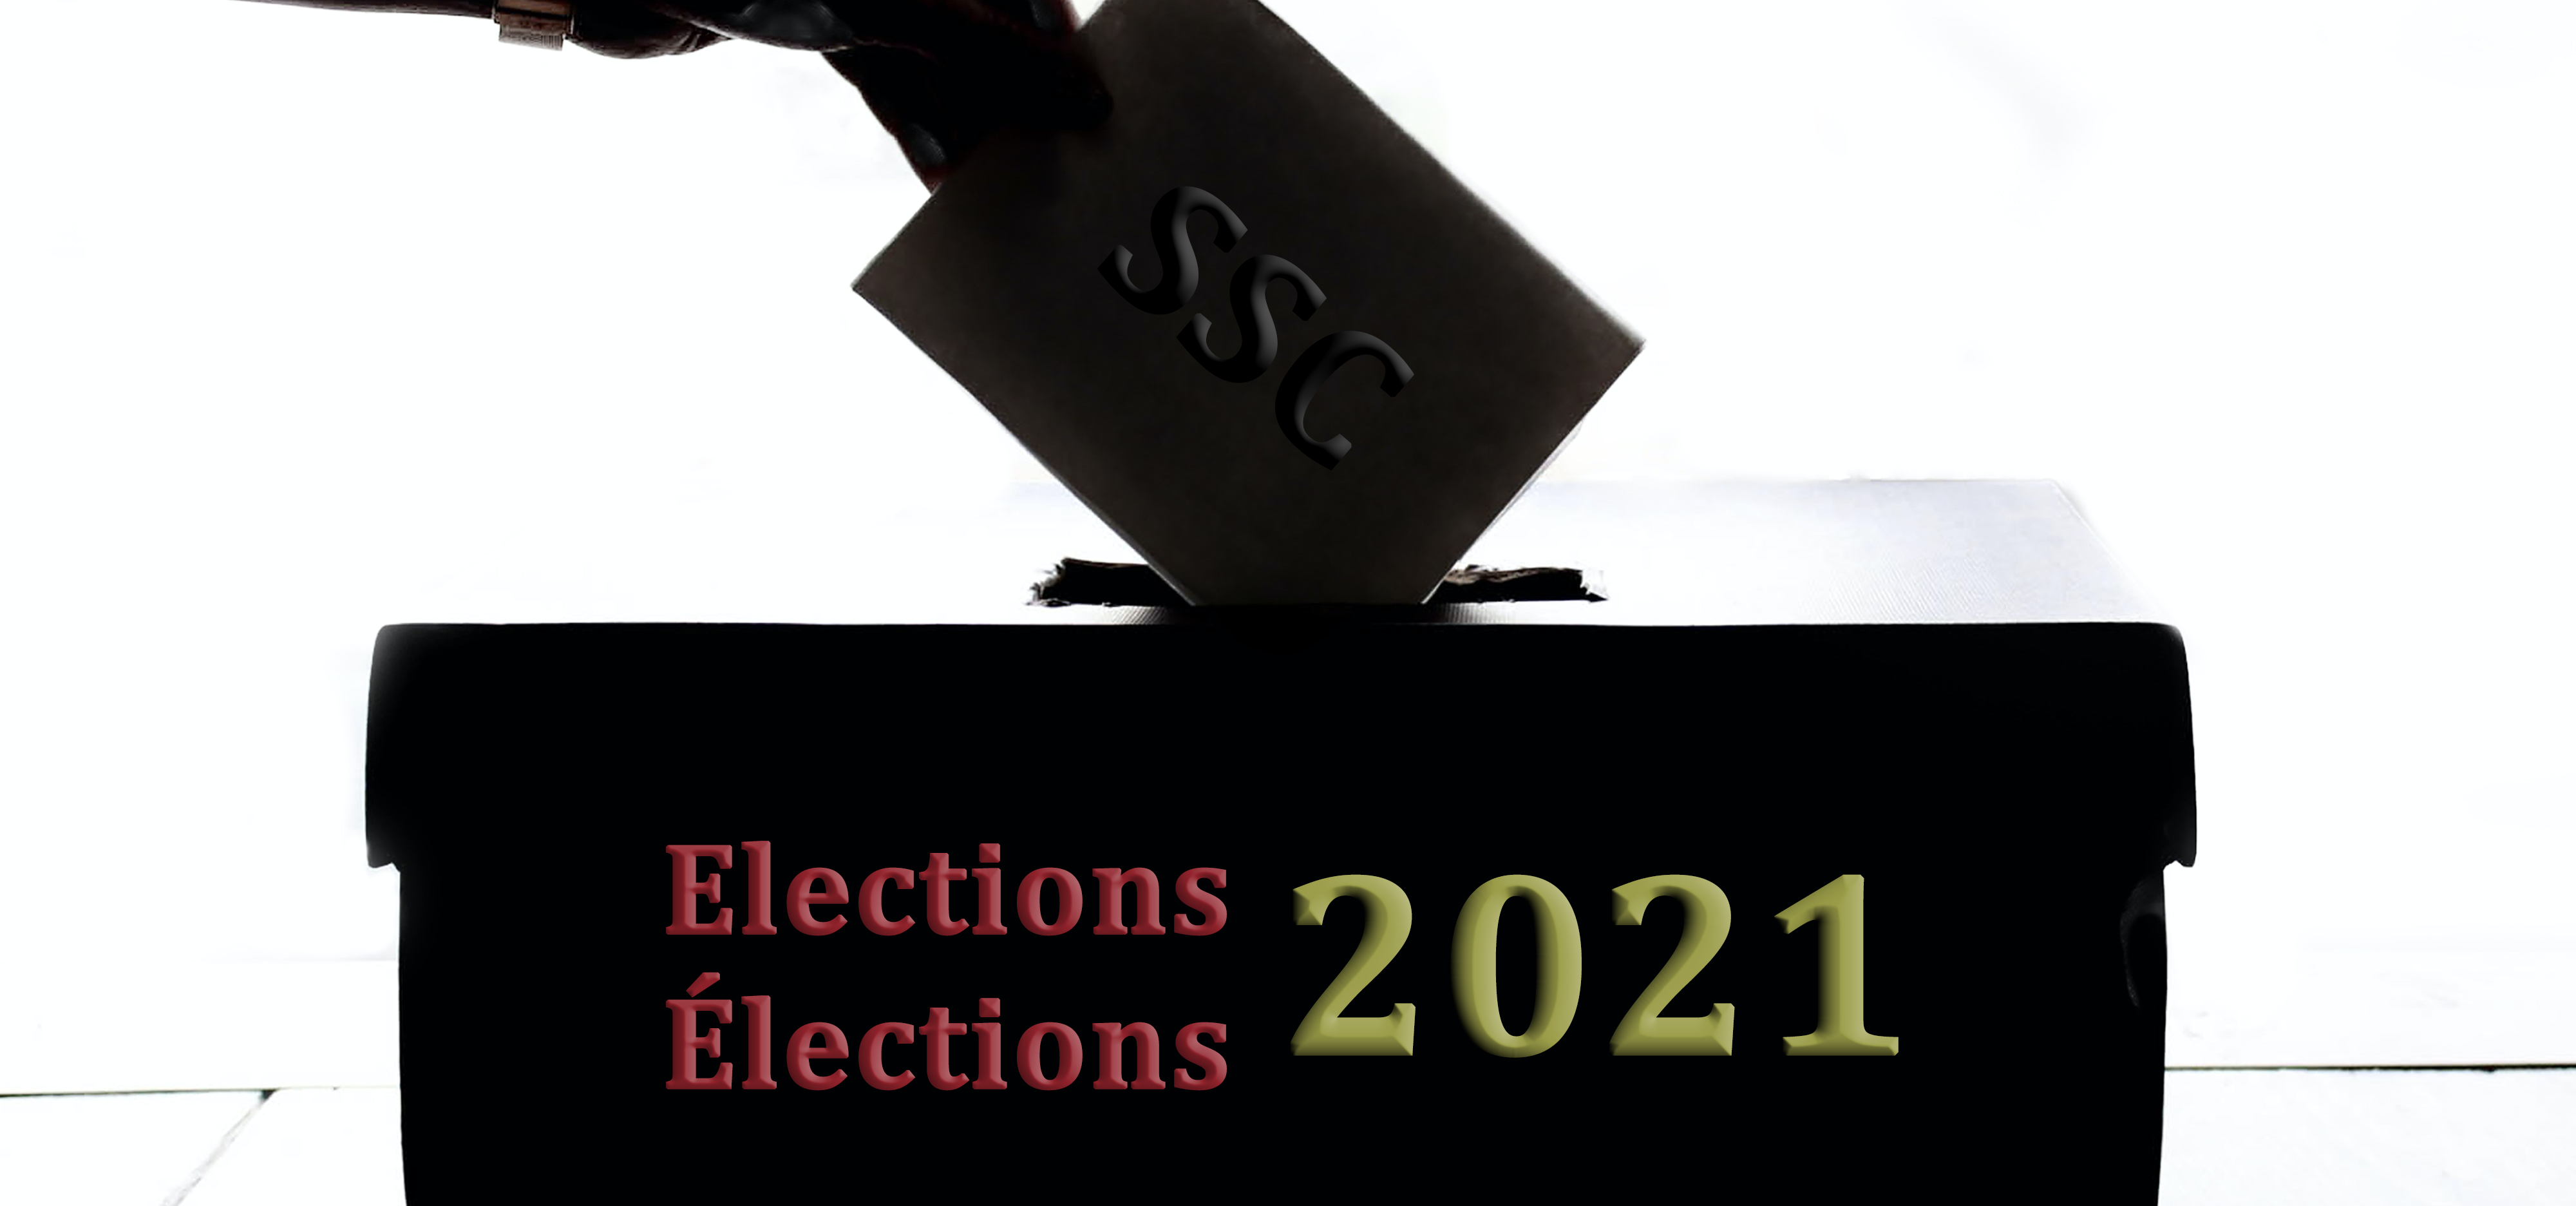 sscElections